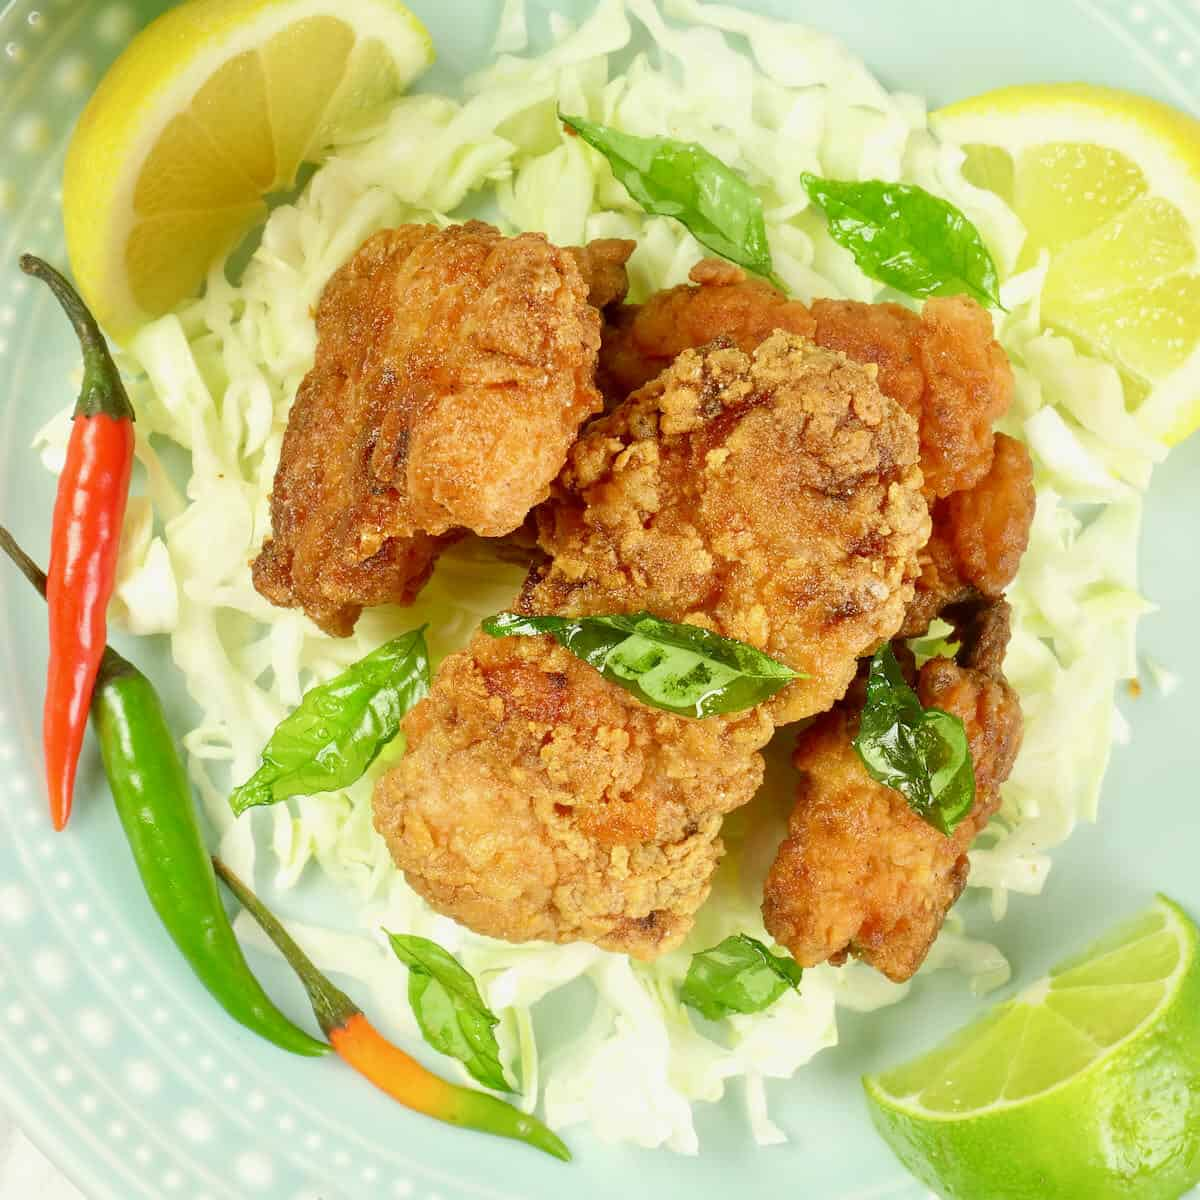 Kerala Fried Chicken Served with lemon wedges, and spray of fried curry leaves, a beer, on a bed of sliced green cabbage.